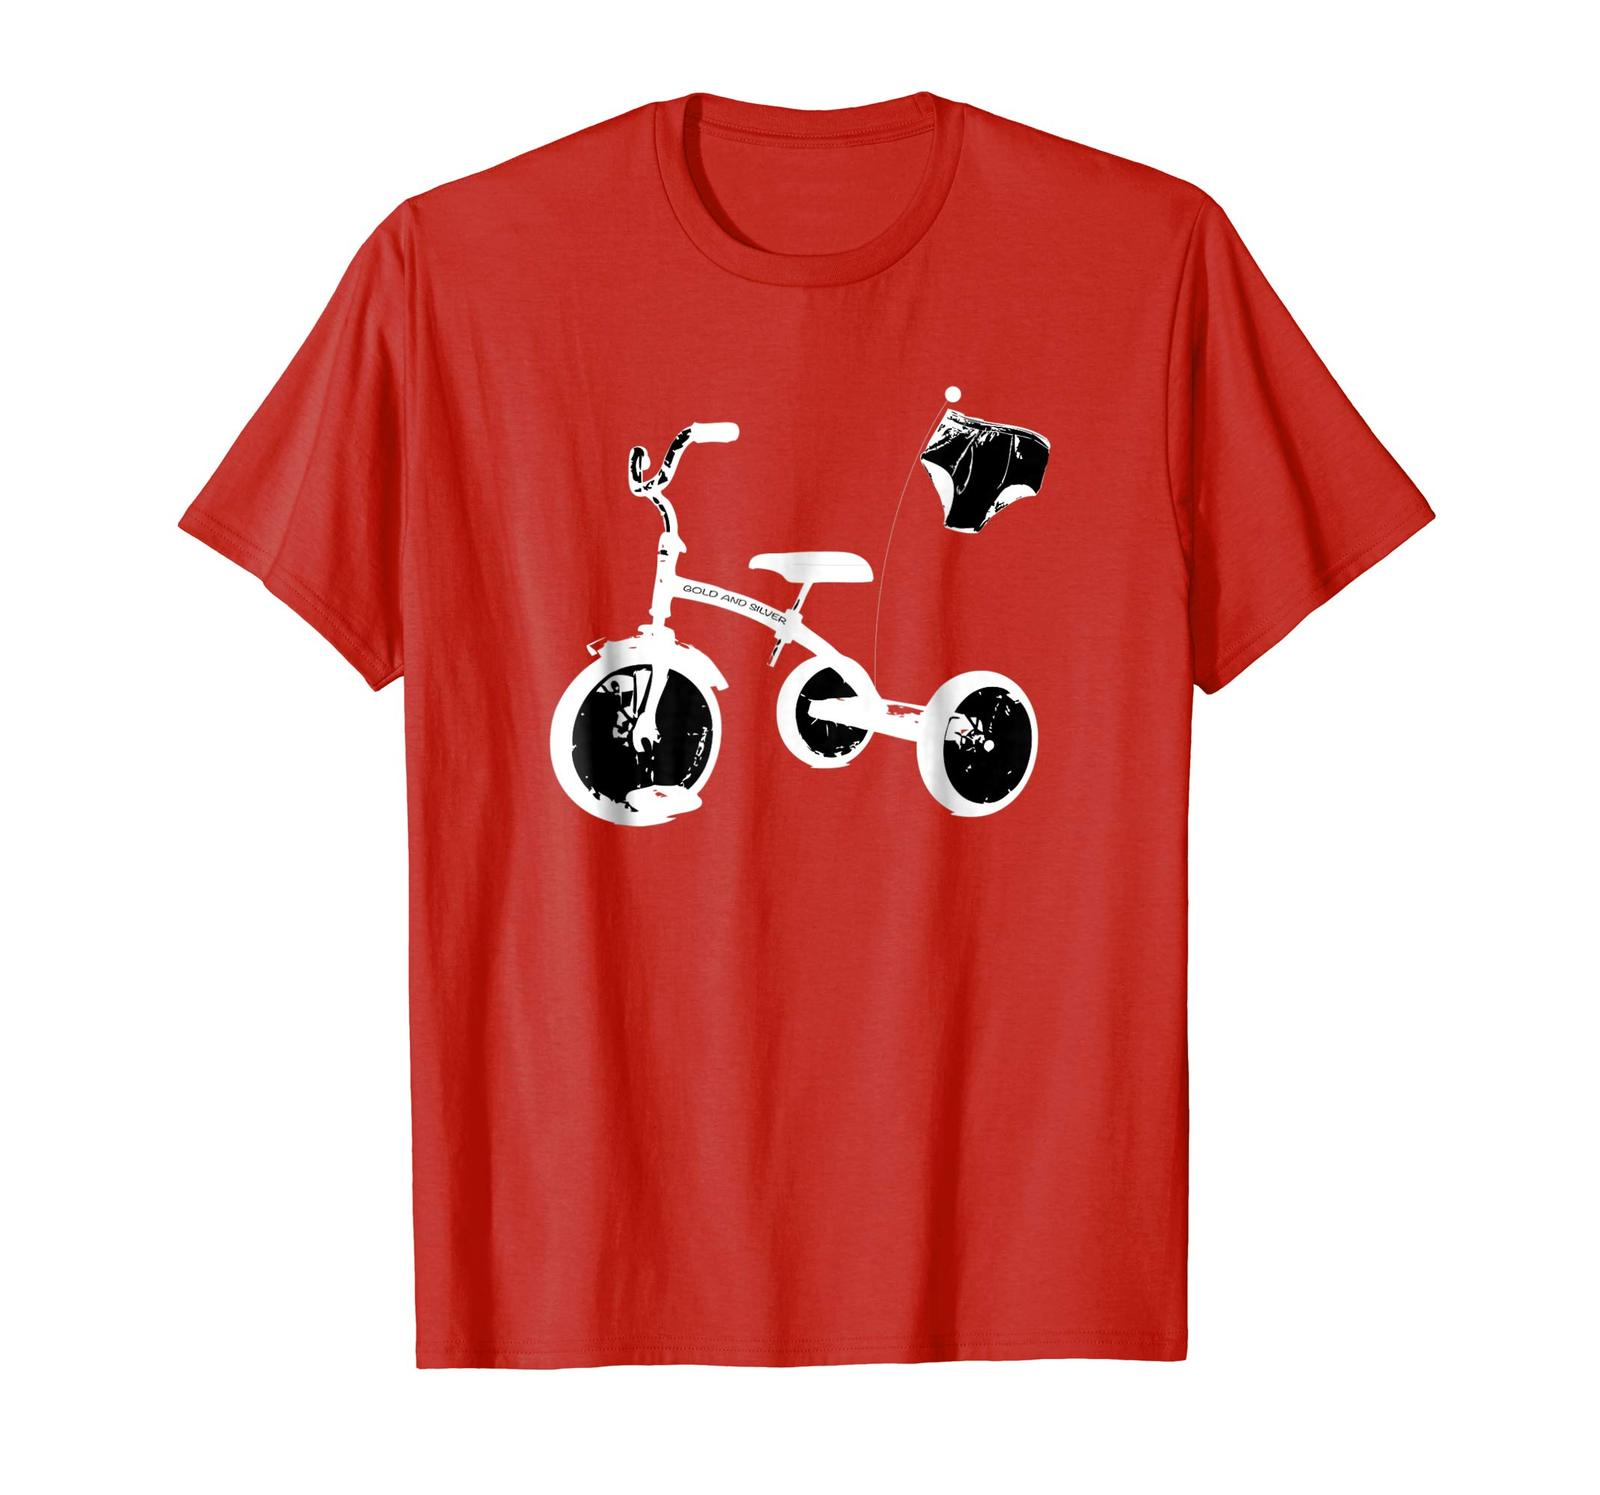 Uncle Shirts -   Underwear Tricycle Race funny graphic t shirt White Men